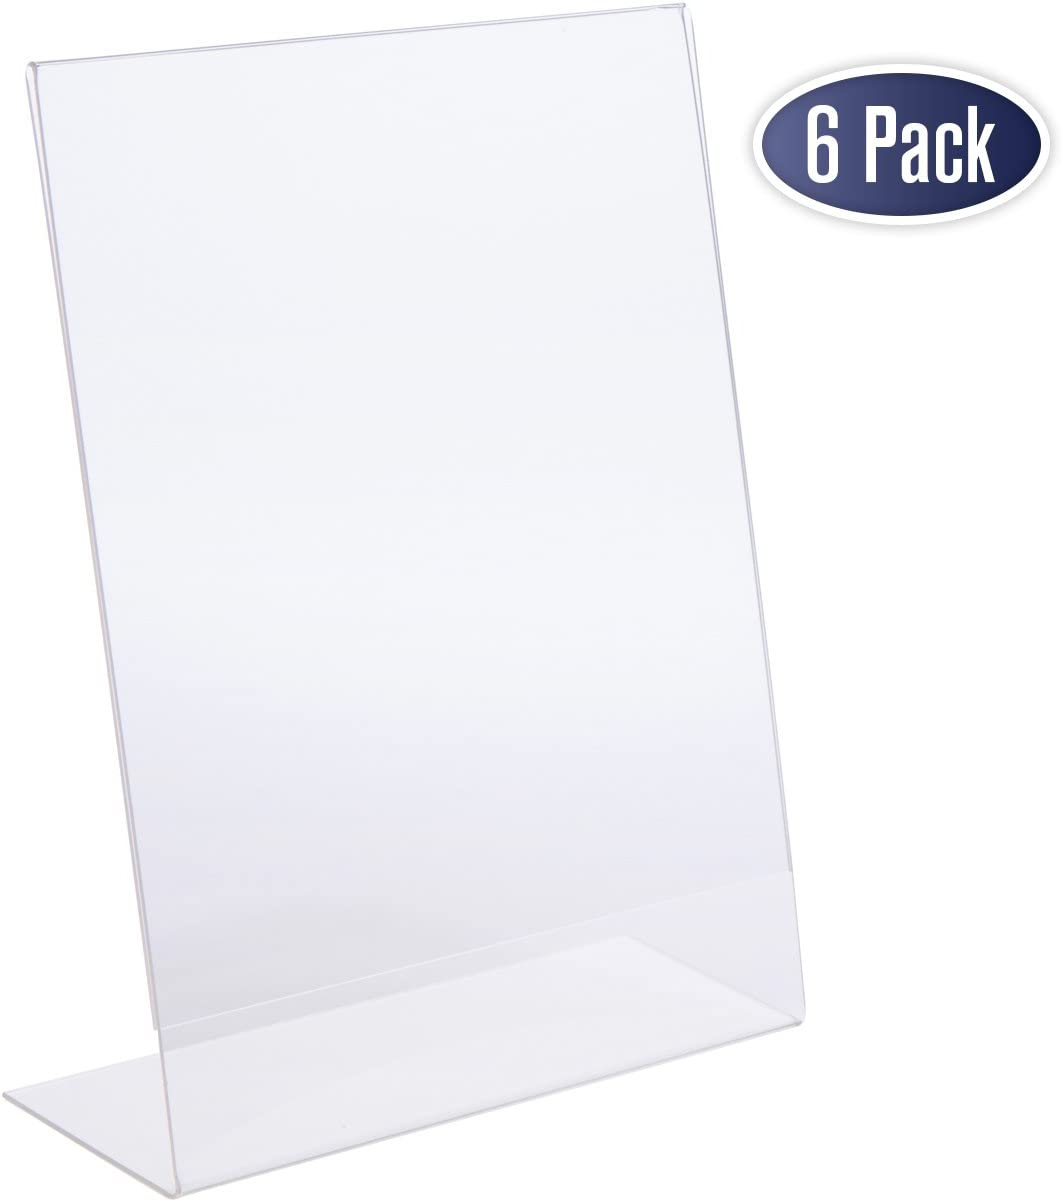 Slant Back Acrylic Sign Holder - 8.5 x 11 Inches Premium Portrait Ad Frames, Table Sign Display Holder, Clear Easel Style Frame, Plastic Brochure Holder for Home, Office, Store, Restaraunt (6 Pack)